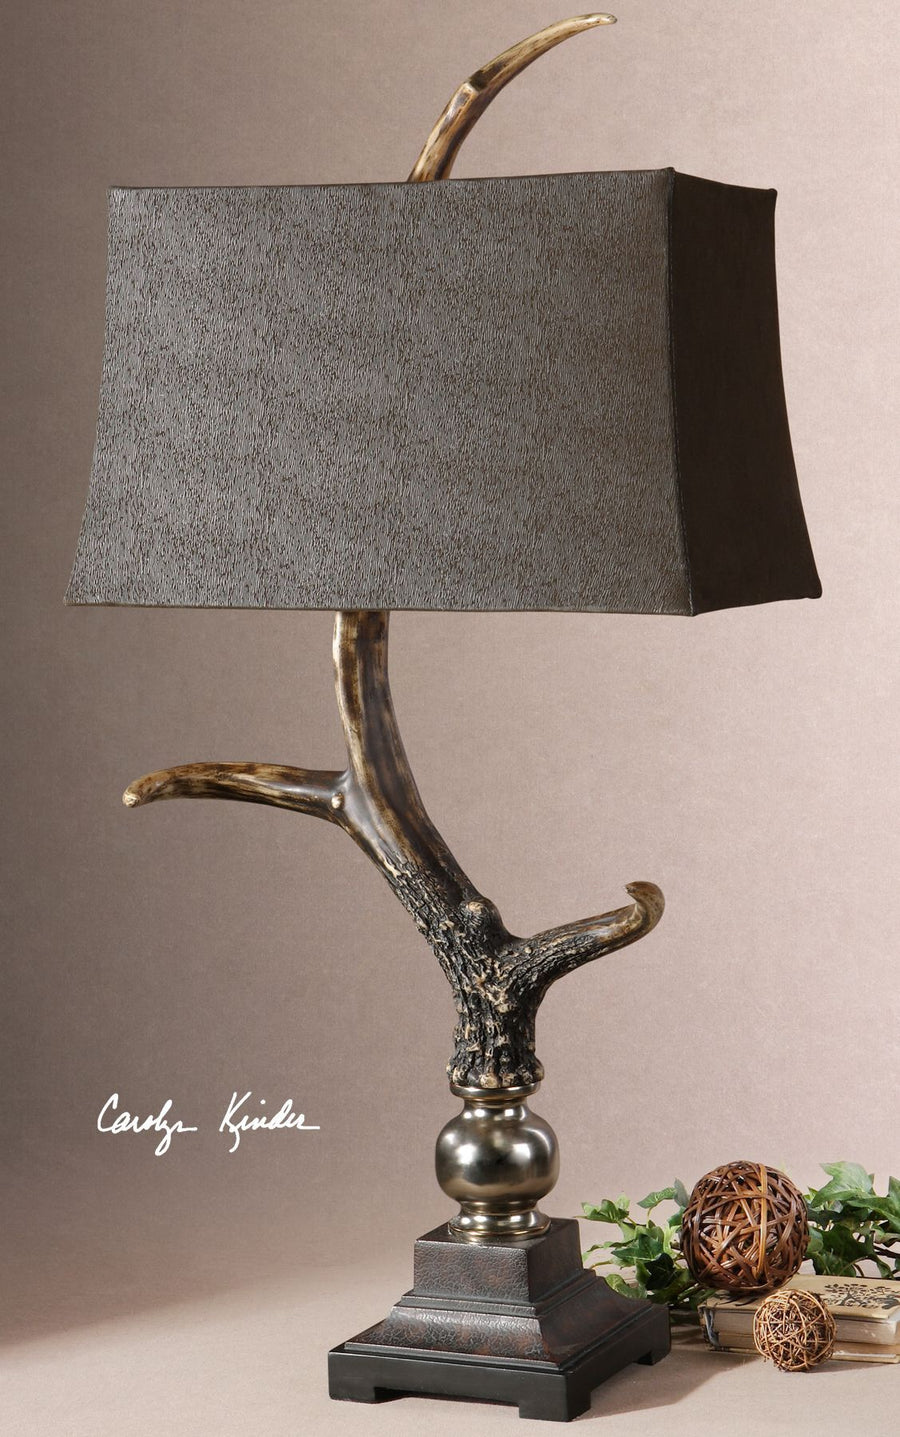 Stag Horn Dark Shade Table Lamp - taylor ray decor